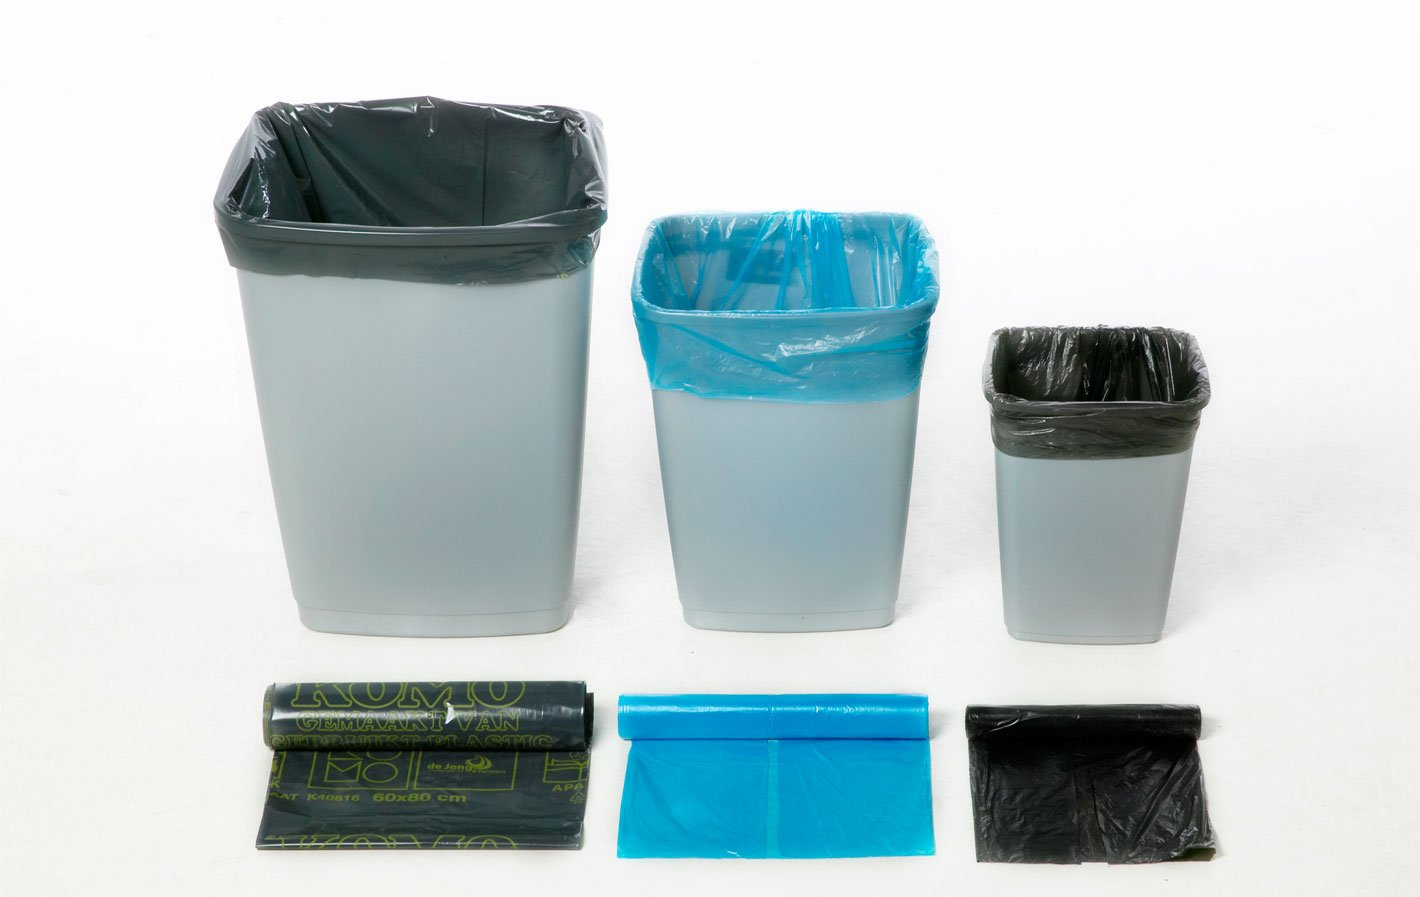 three rubbish bins of descending size, with a bin liner in each